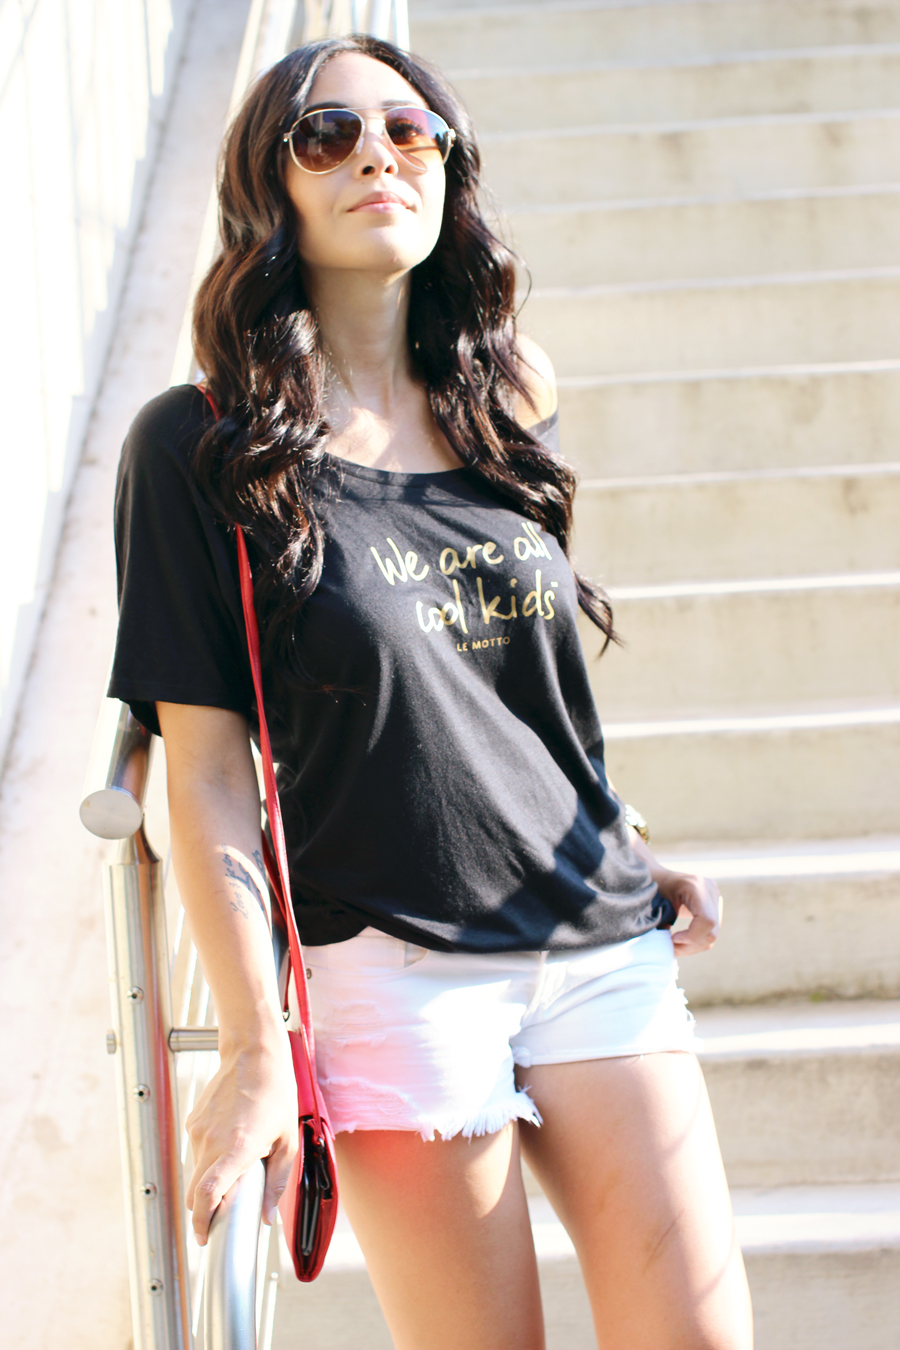 FIXIN-TO-THRILL-LE-MOTTO-ATX-AUSTIN-STYLE-BLOG-SKINNY-SHORTS-SANDALS-SHIRTS-WORDS-EMPOWERMENT-SPONSORED-TRENDS-FW15-TRENDY-CHIC-GLAM-FASHION-TEXAS-BLACK-2